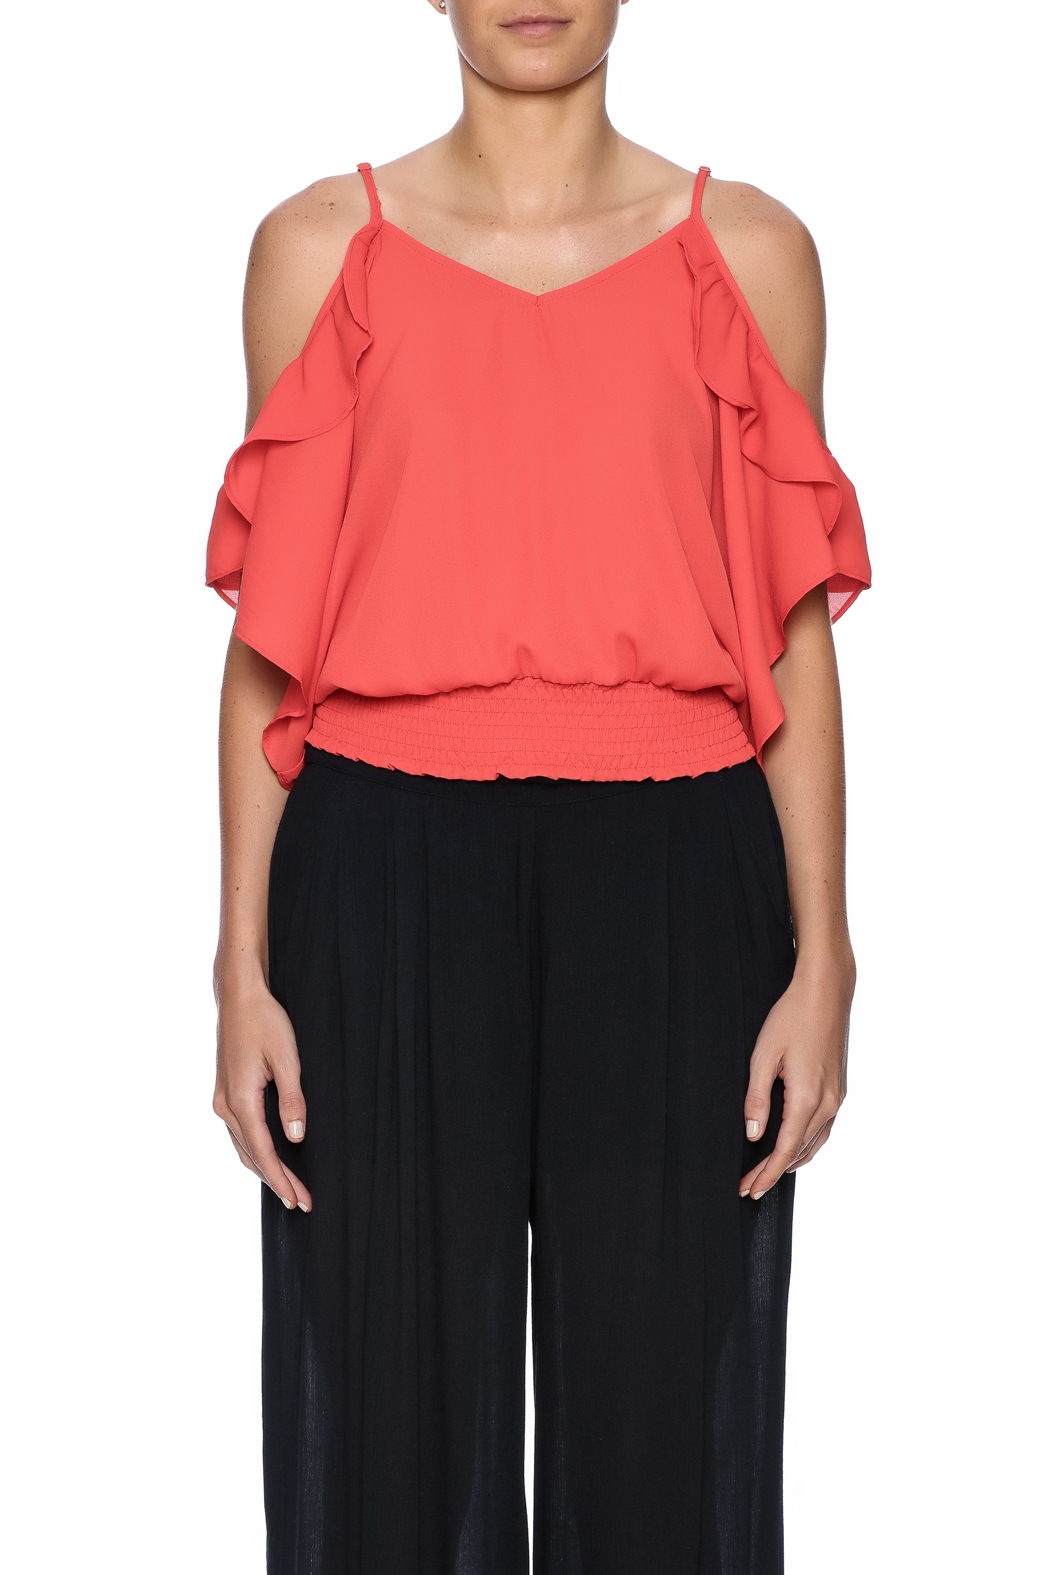 Jealous Tomato Tomato Ruffle Top - Side Cropped Image